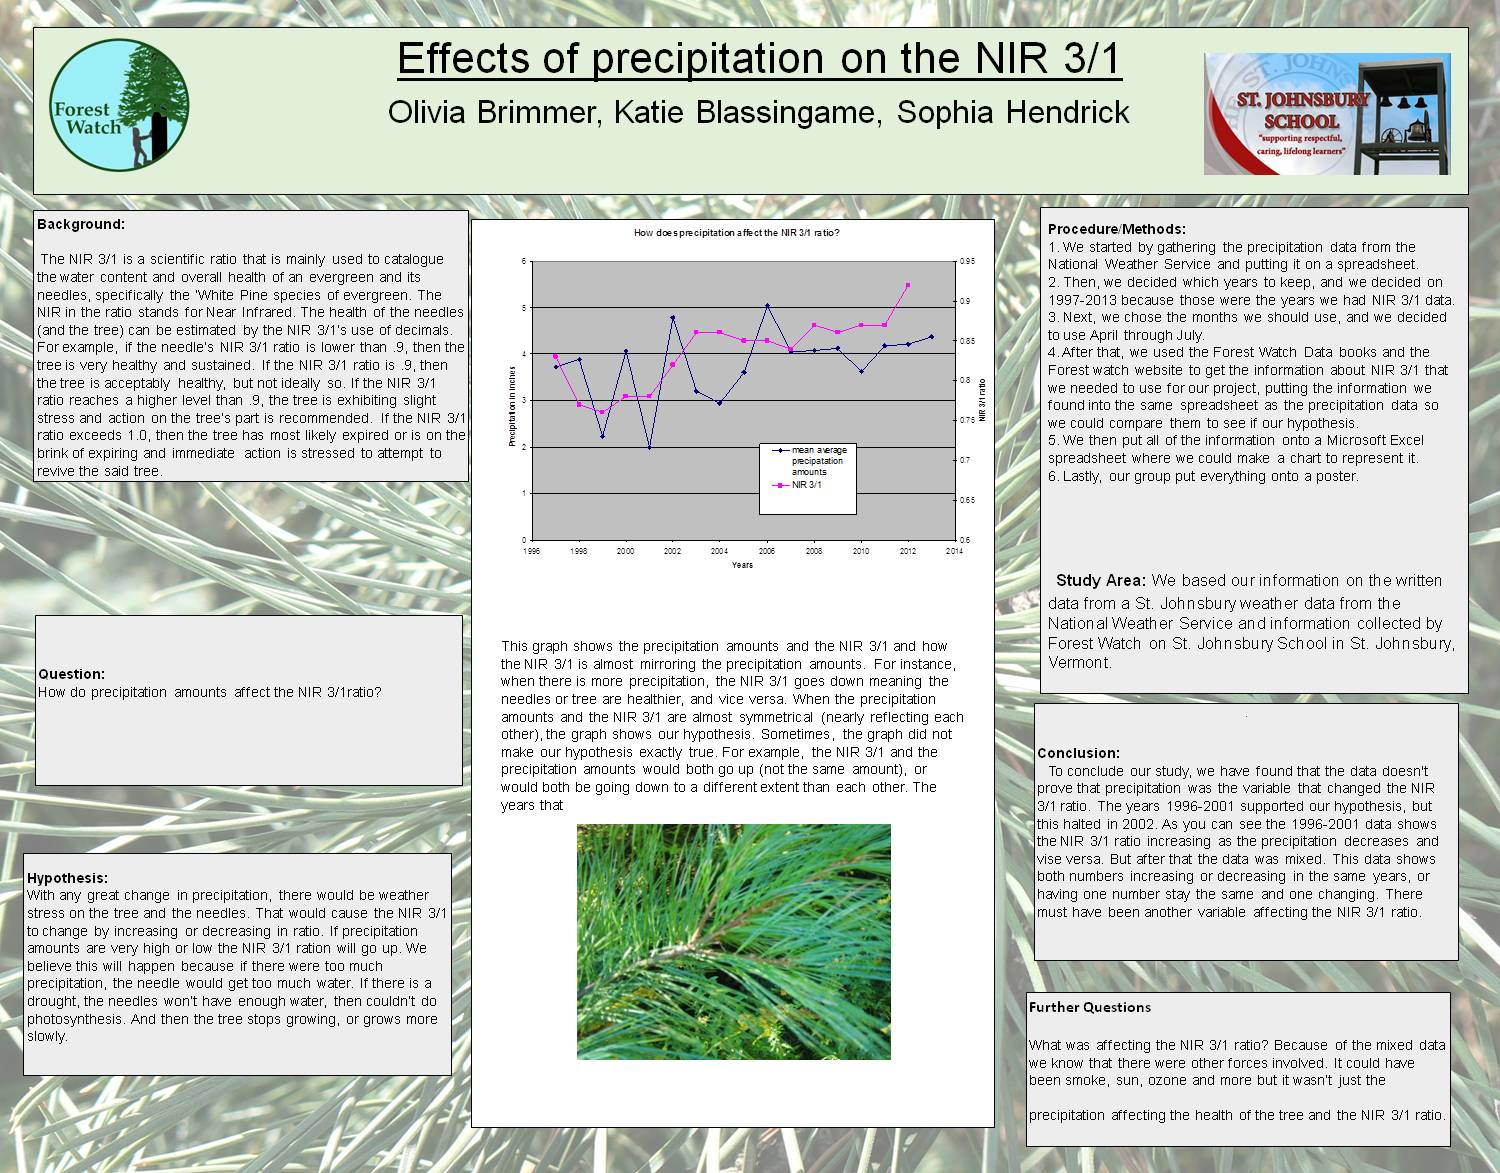 Effects Of Precipitation On The Nir 3/1 by obwurzburg